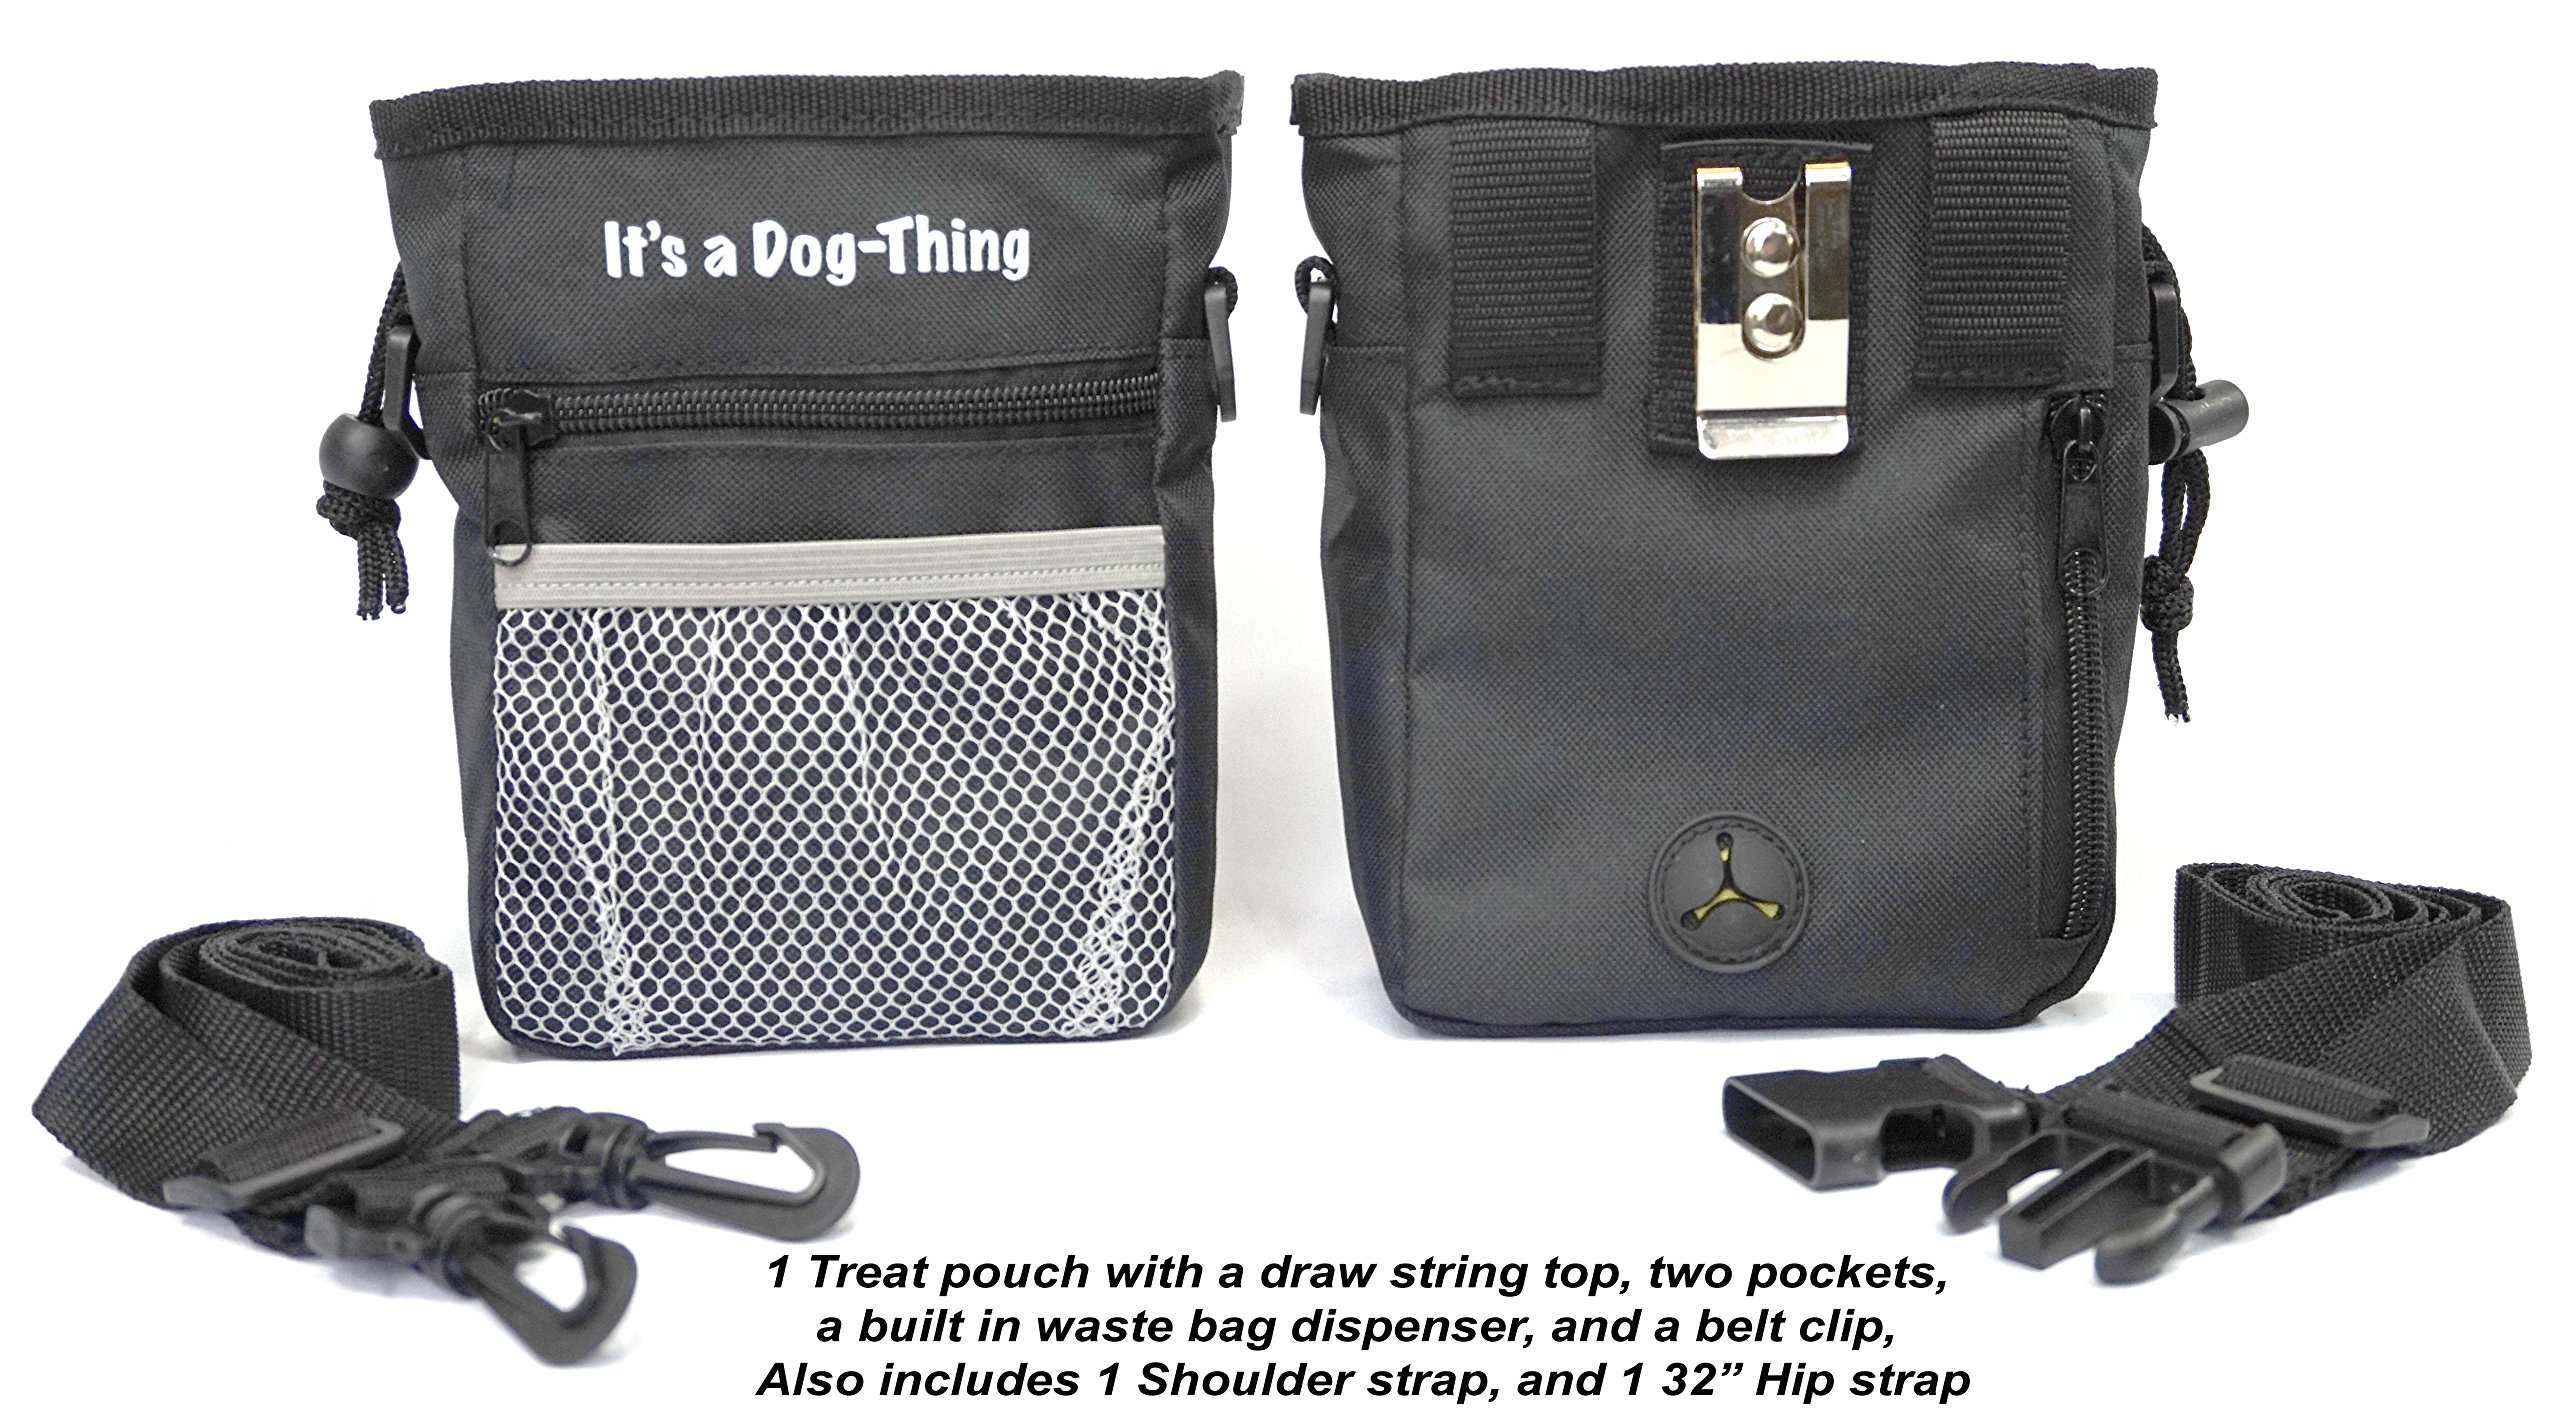 Dog Treat Pouch with Built in Waste Bag Dispenser, Two Pockets, and Belt Clip. This Black Training Accessory is Best for Dog Walking, obedience Training, and clicker Training by Dog-Thing